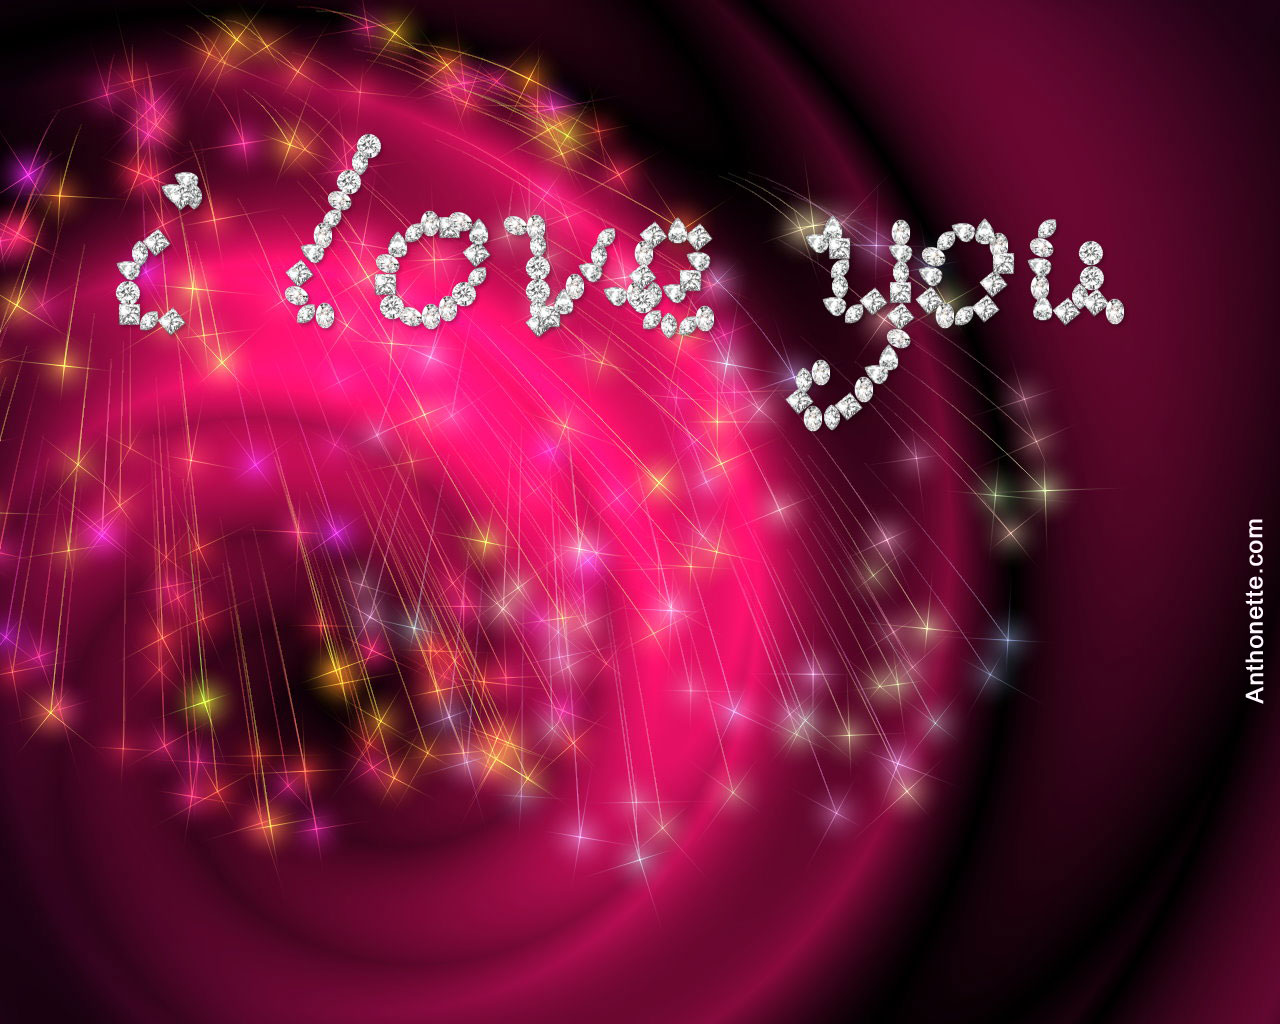 i love you wallpaper,pink,text,red,light,graphic design